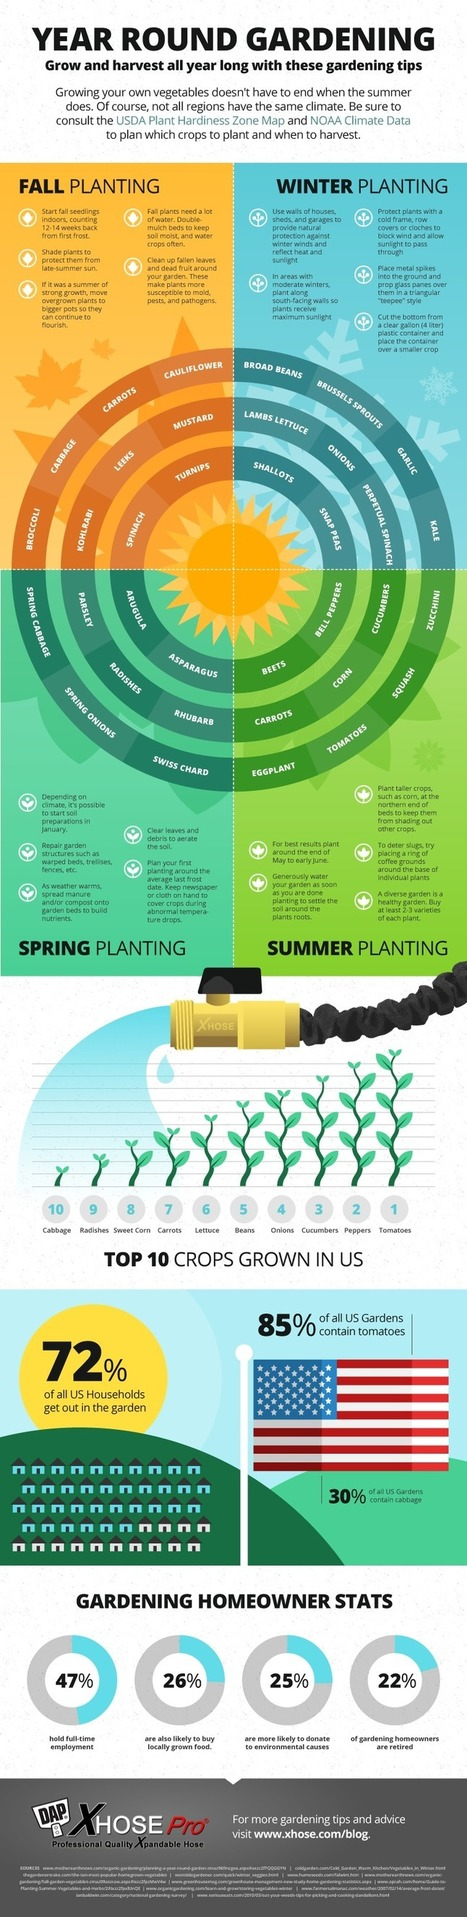 Year Round Gardening Tips for Every Season | Gardening planning | Scoop.it